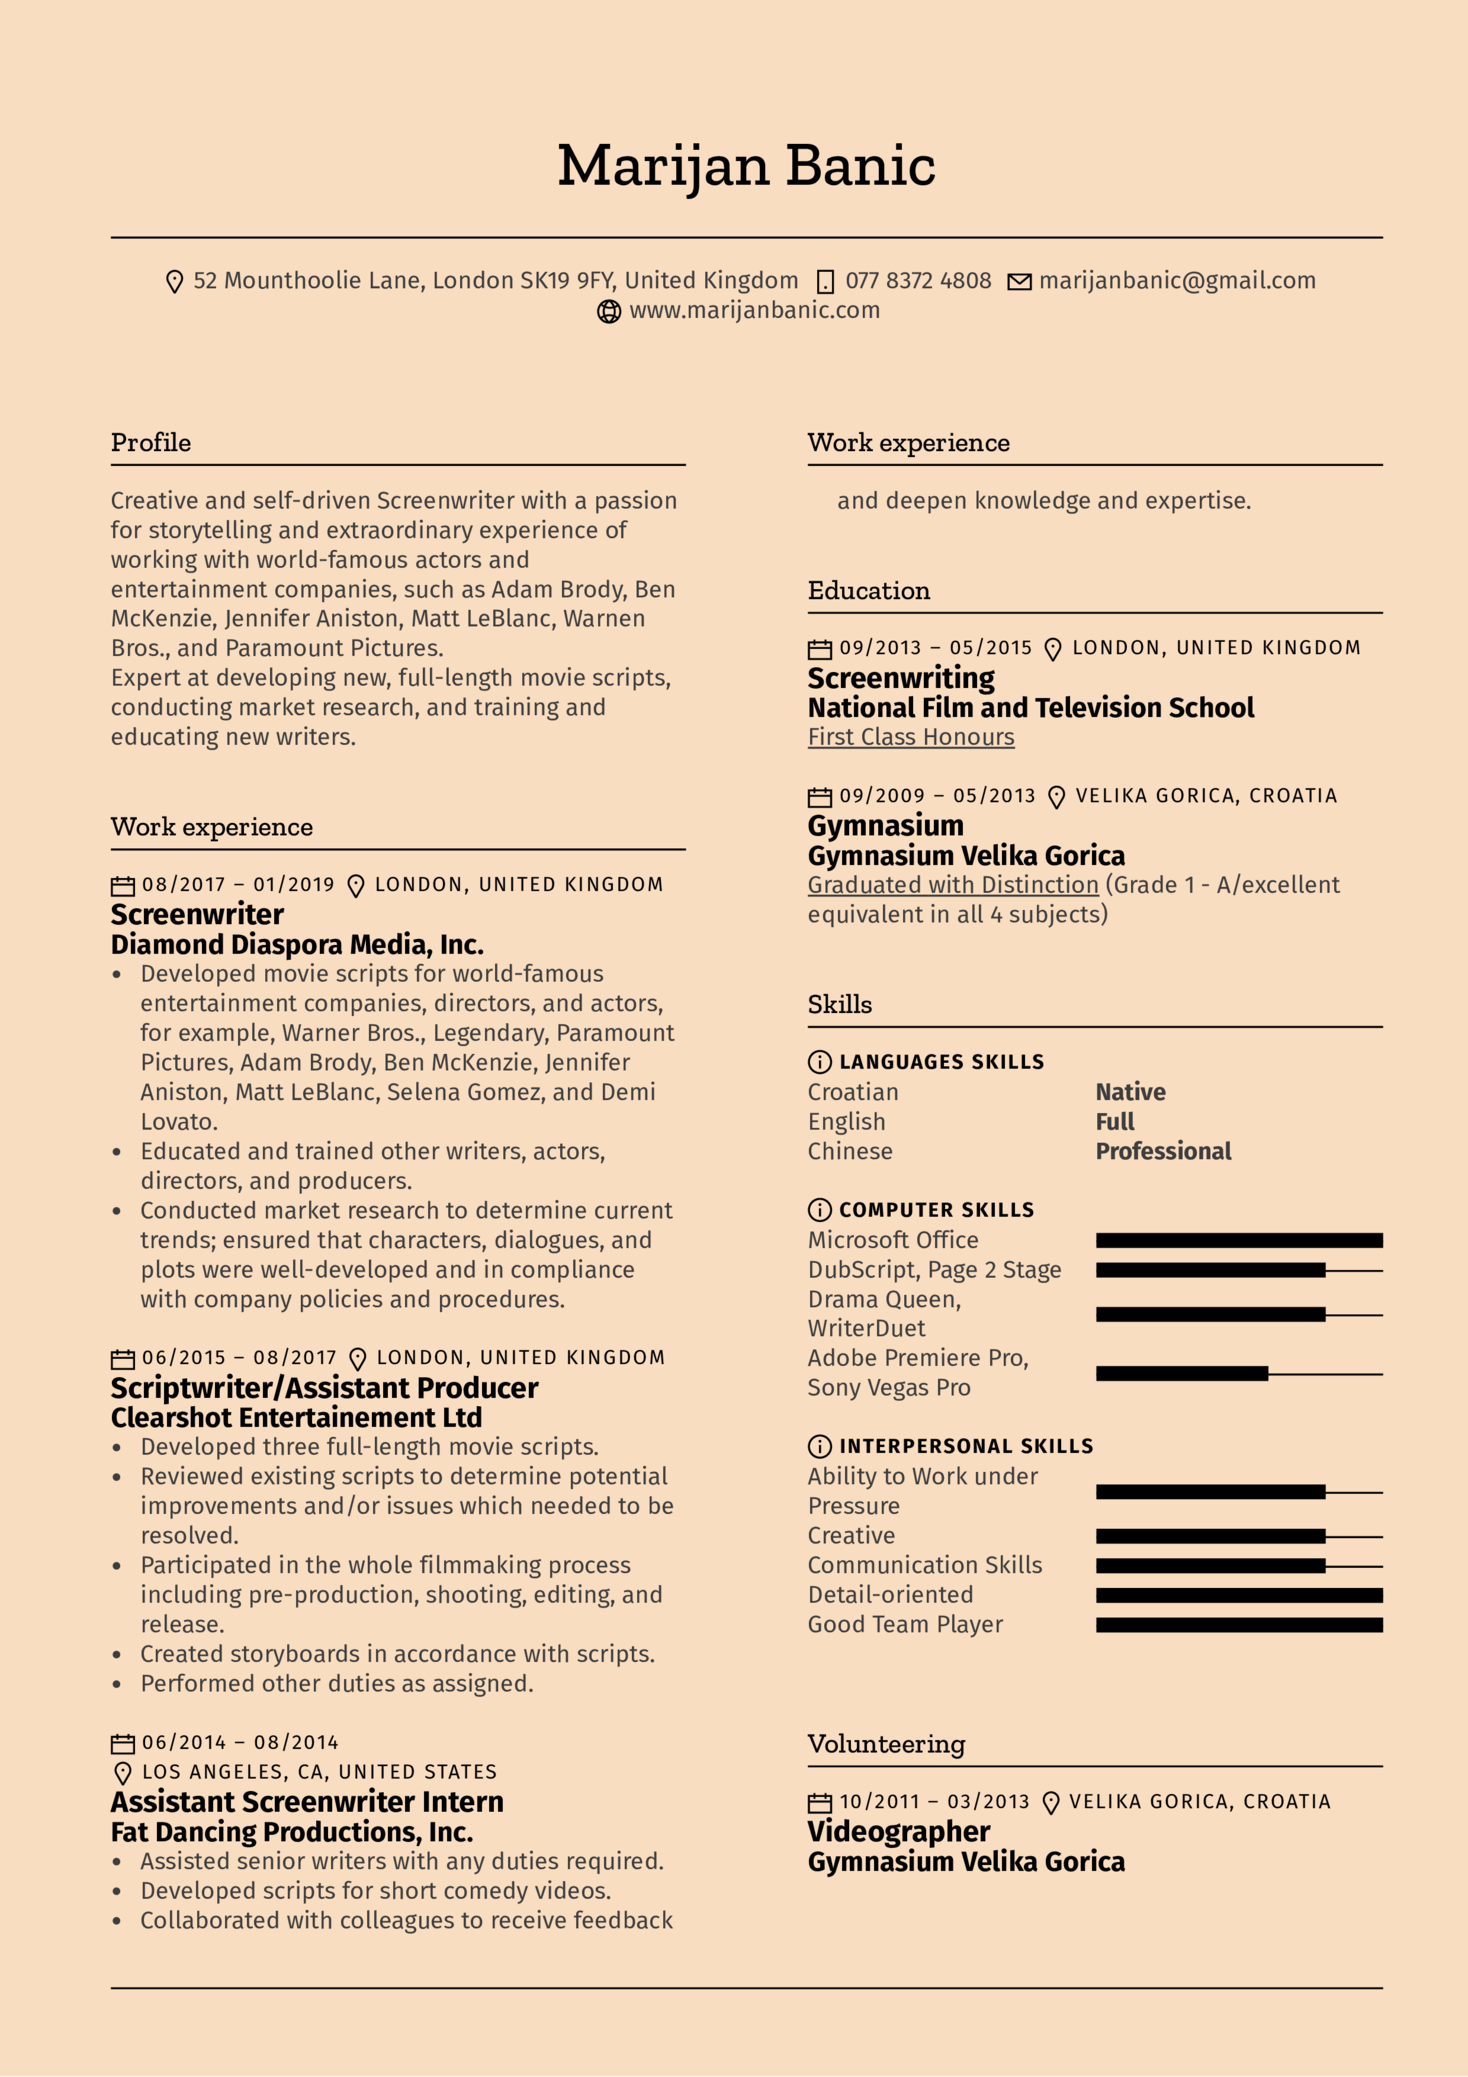 Screenwriter Resume Template (Parte 1)